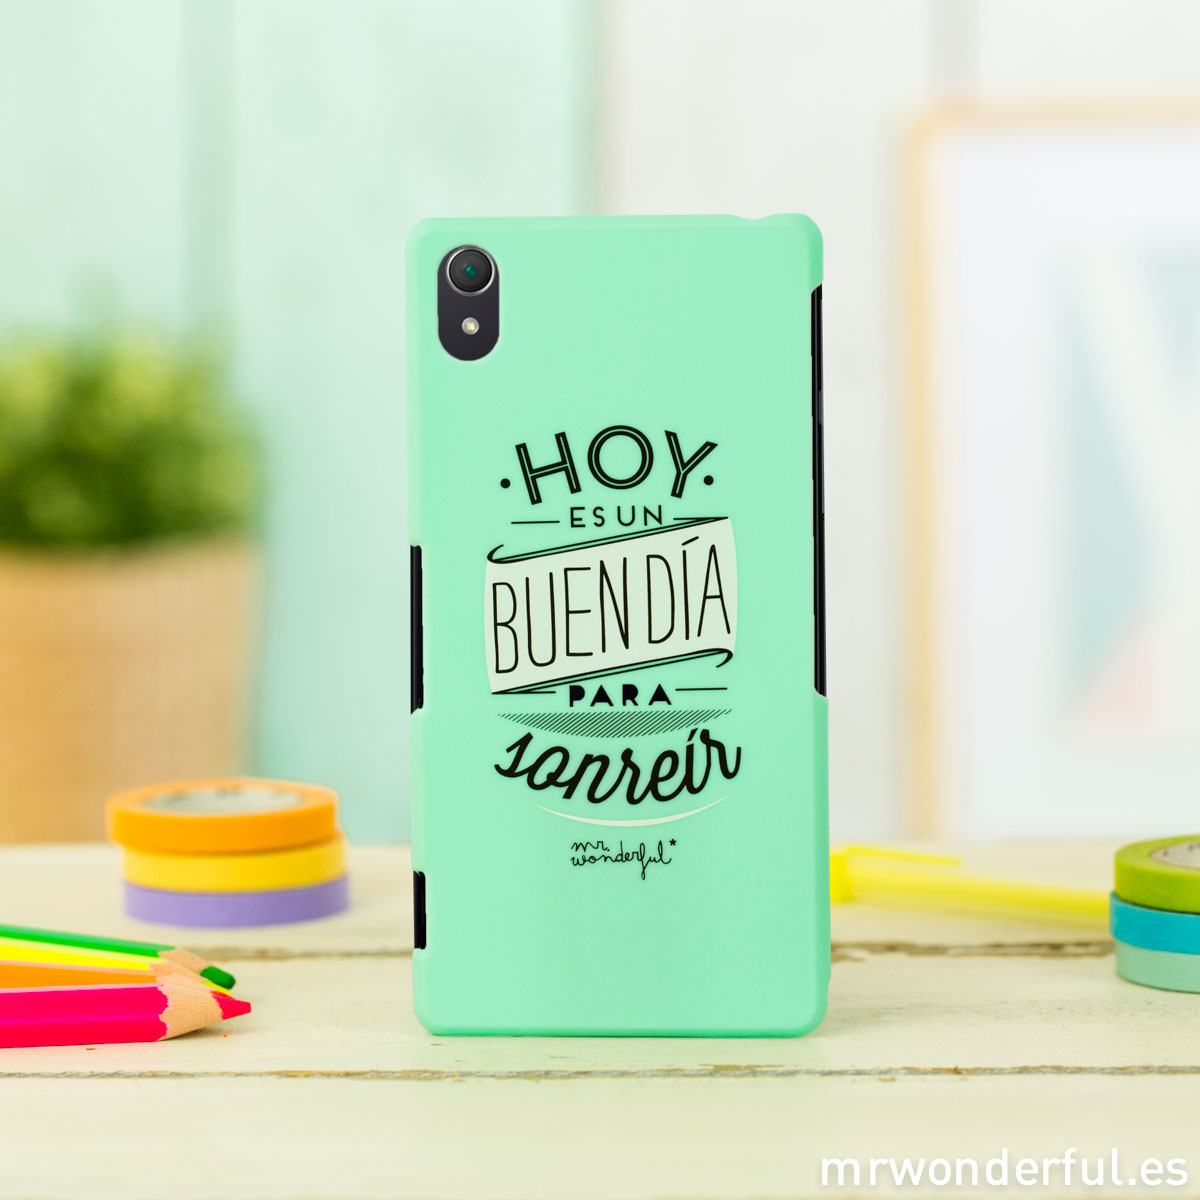 mrwonderful_MRFOL004_funda-mint-samsung-galaxy-S5_you-make-heart-sing-14-Editar-2